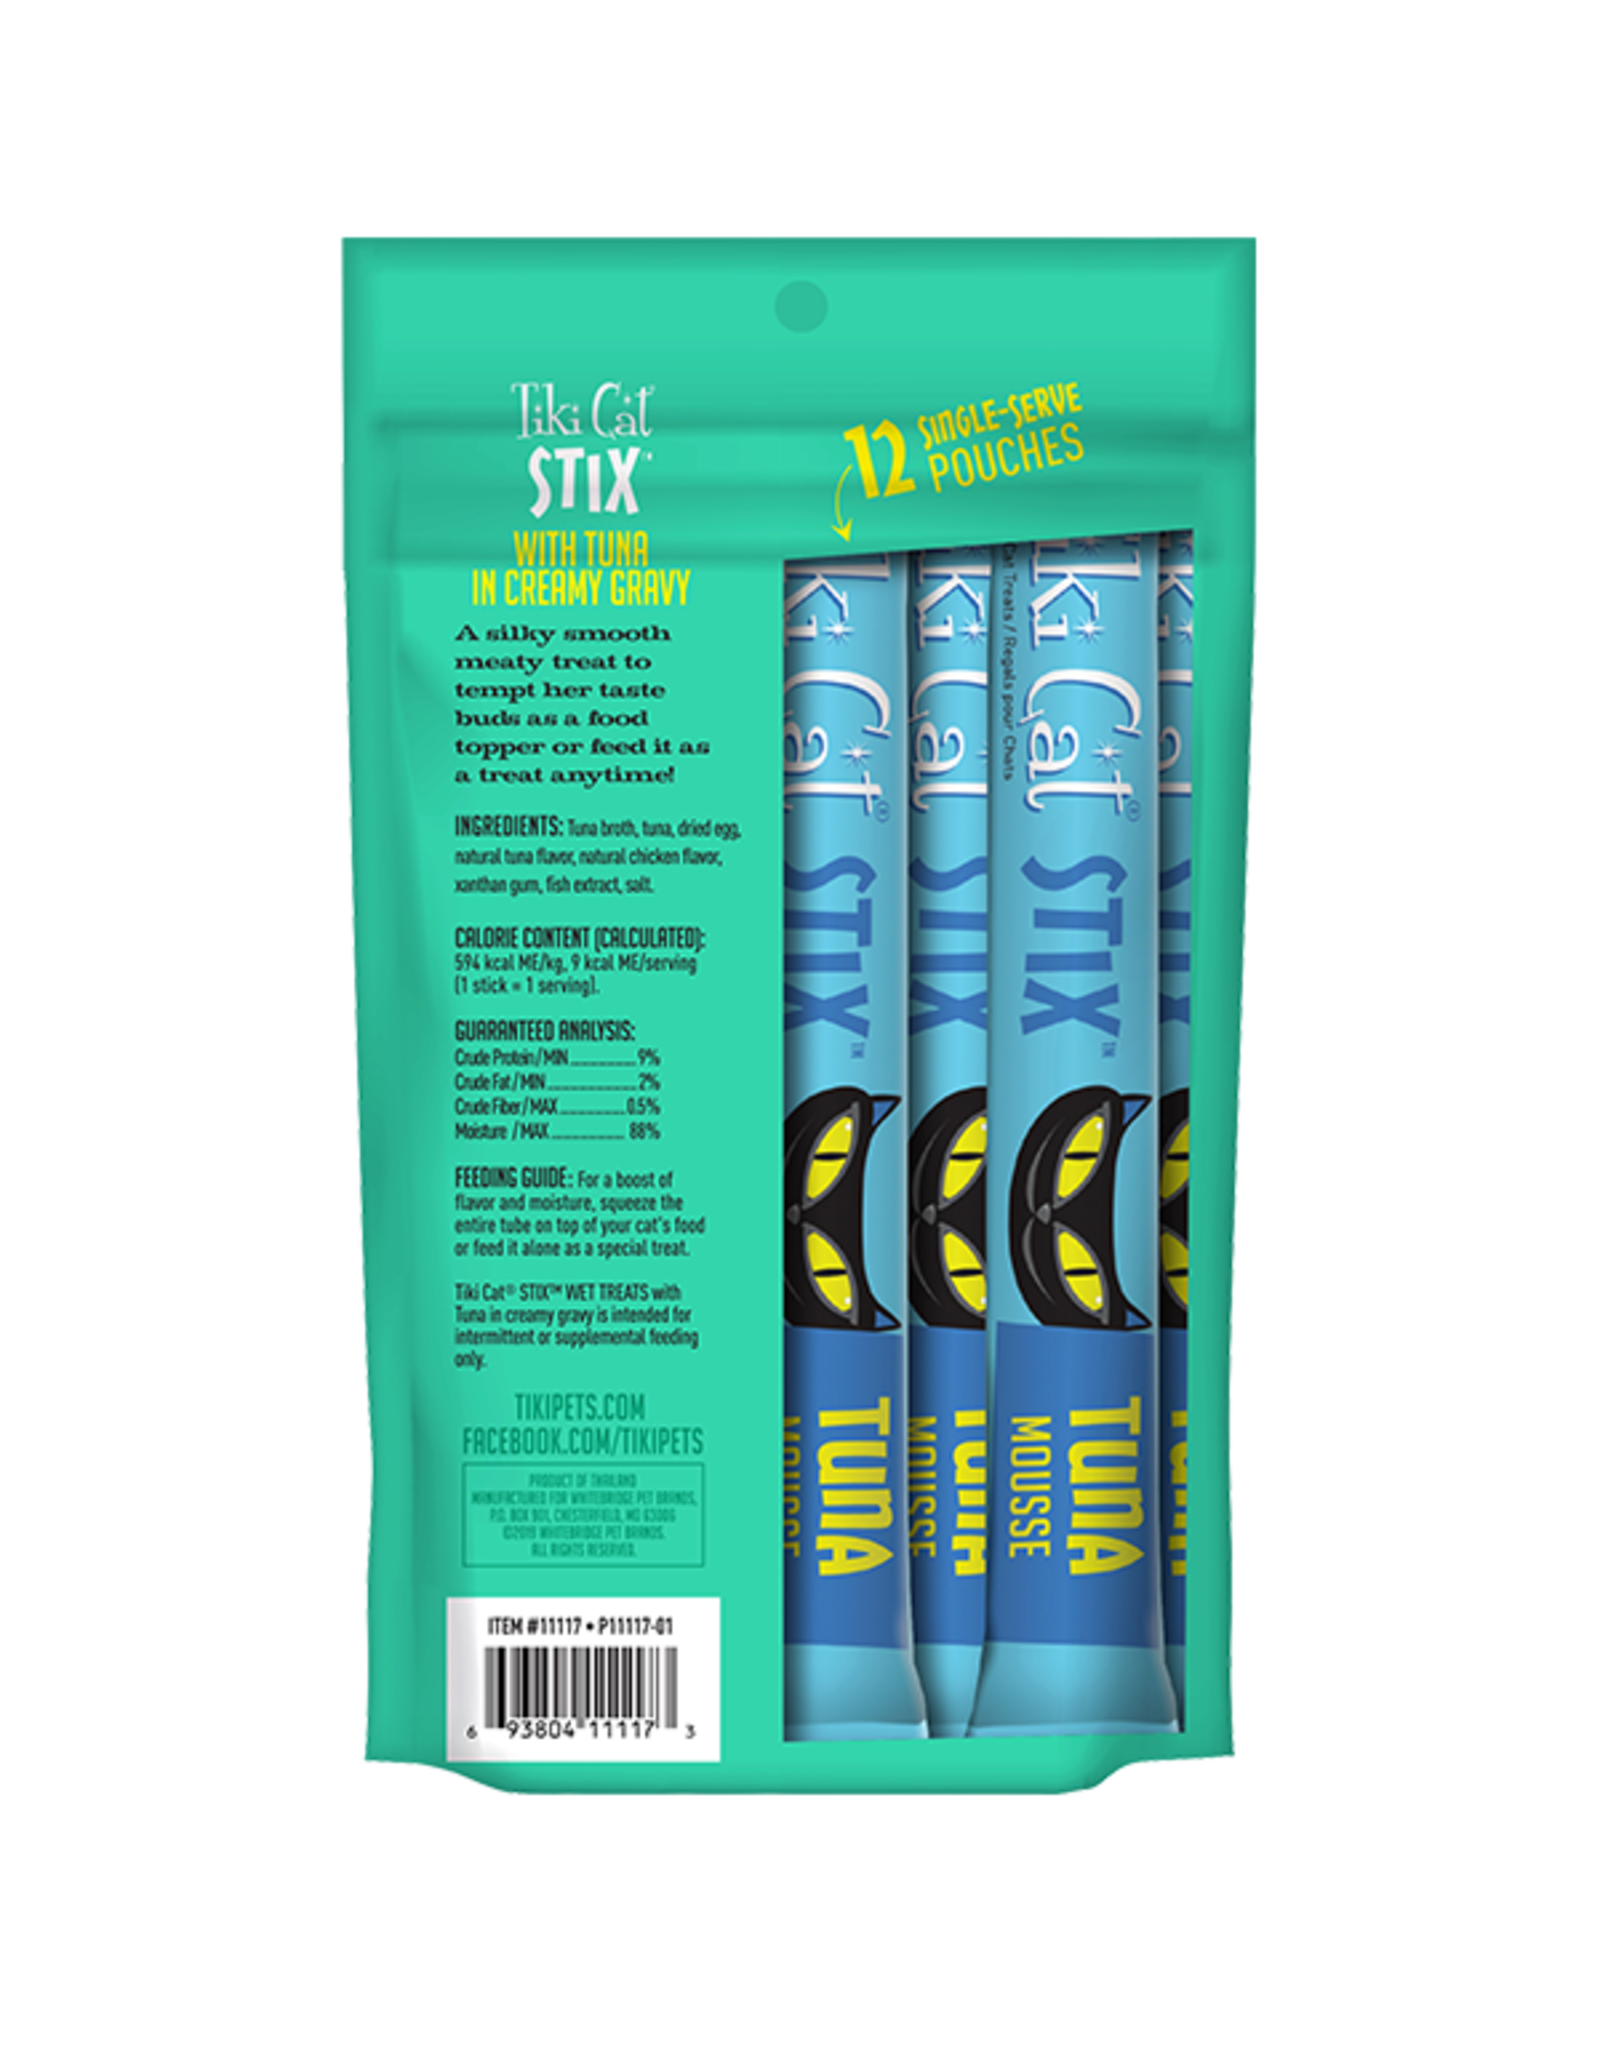 Tiki Cat Tiki Cat Stix Wet Treats